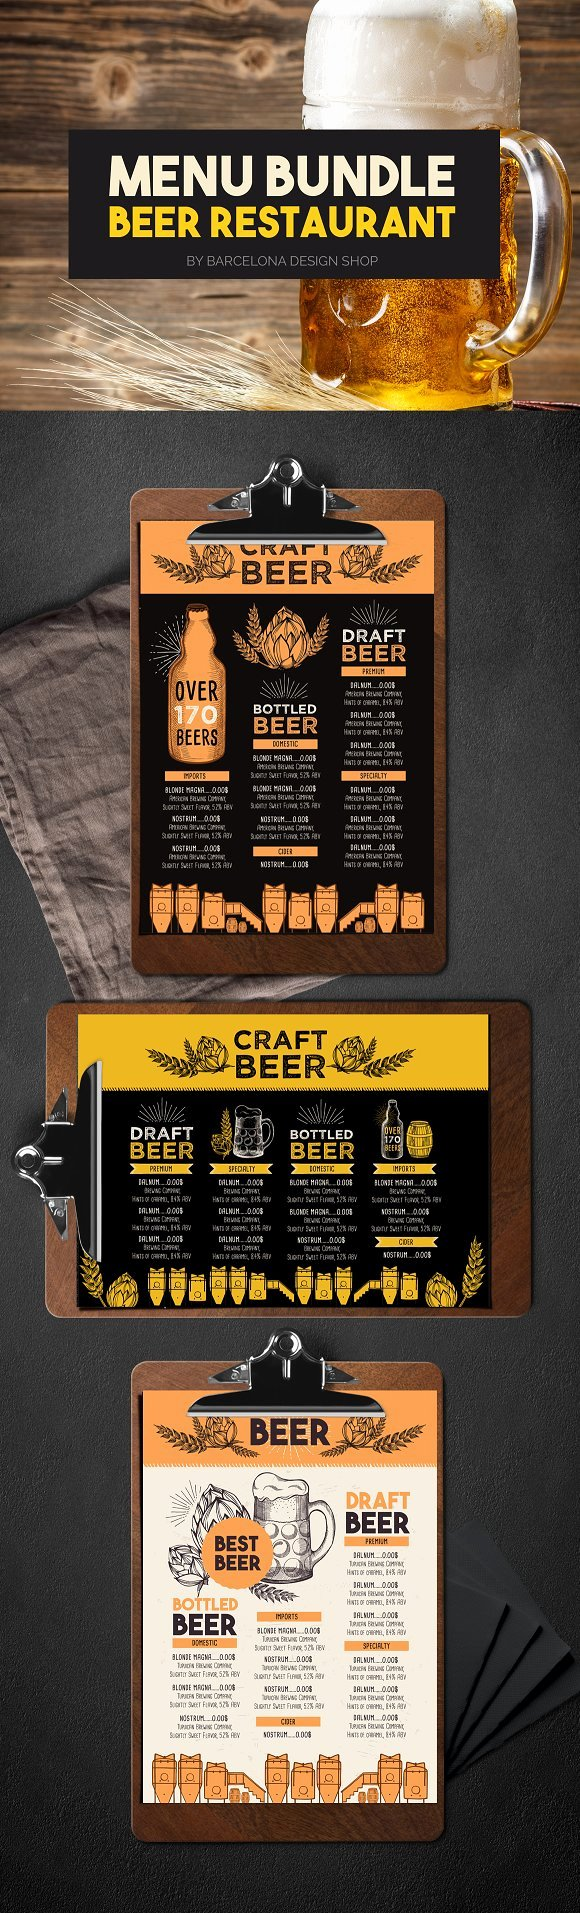 Free Beer Menu Template Elegant Beer Menu Bundle Brochure Templates Creative Market